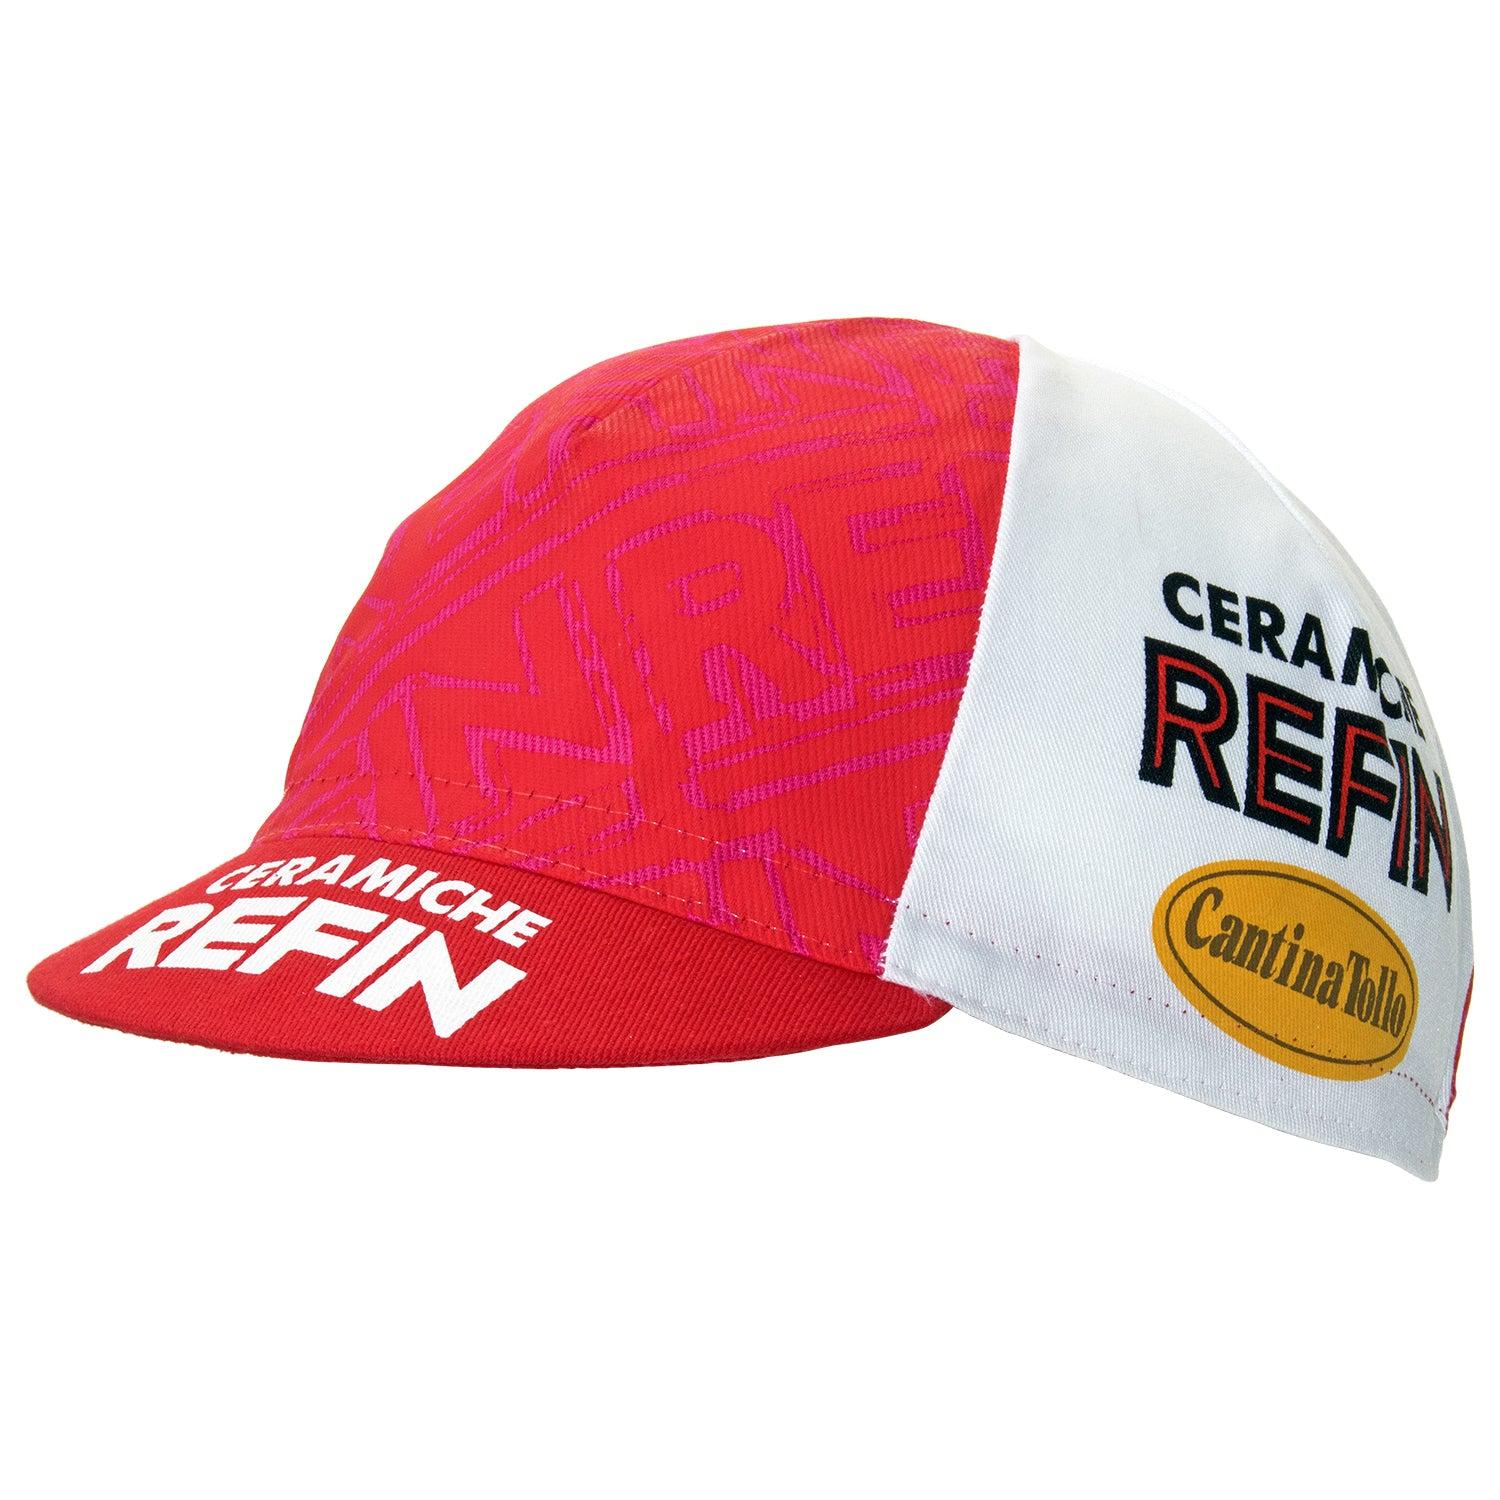 Ceramiche Refin Retro Cotton Cycling Cap